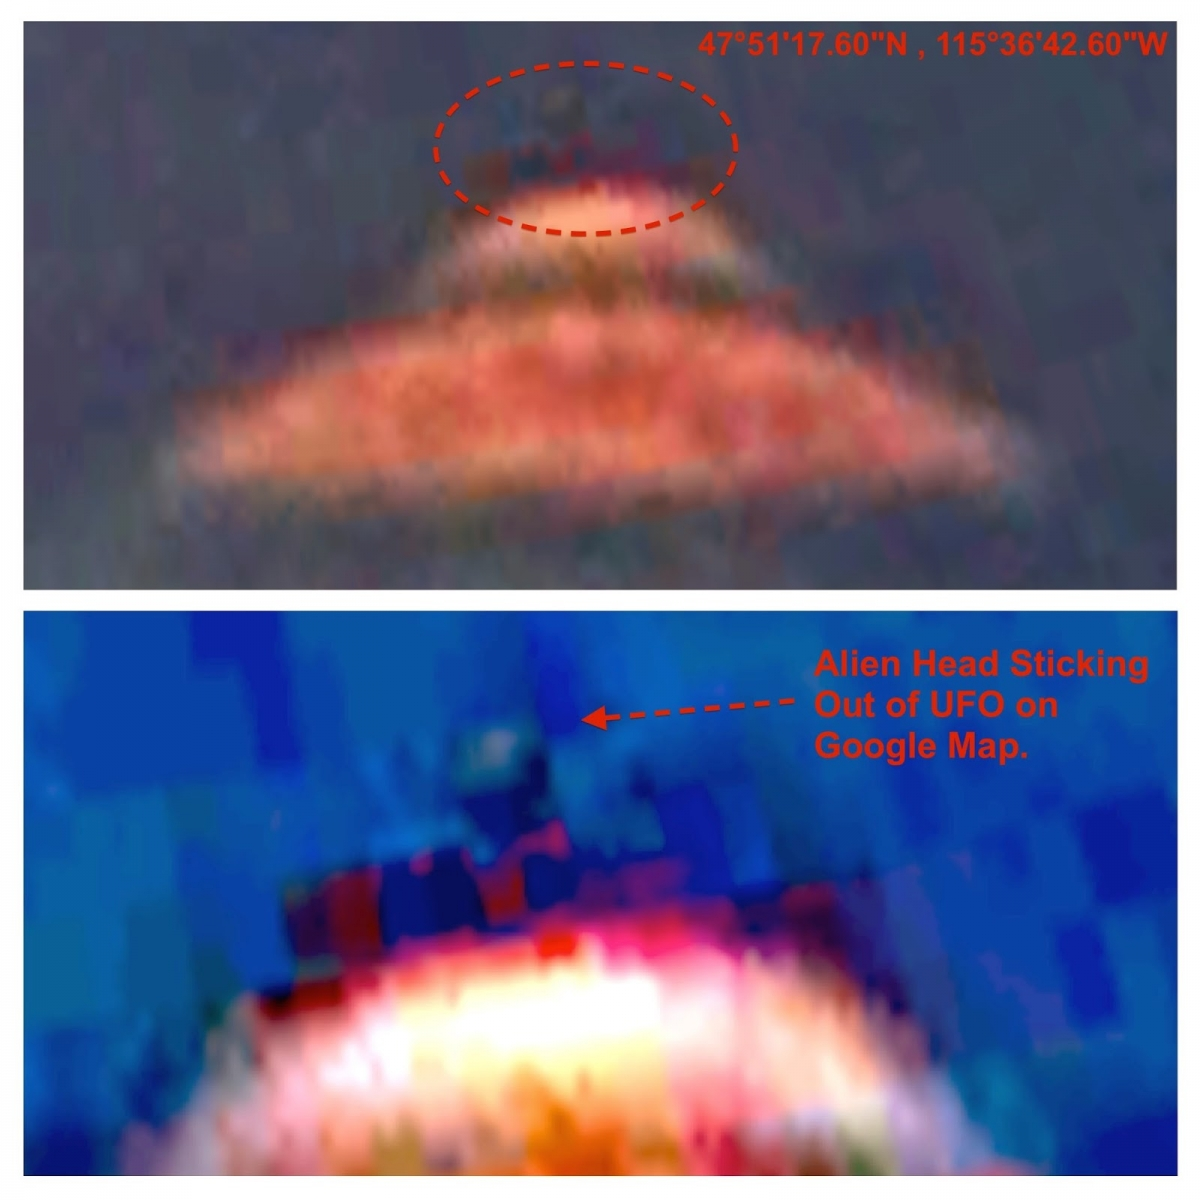 UFO with 'Actual' Alien Captured by Google Earth Map?